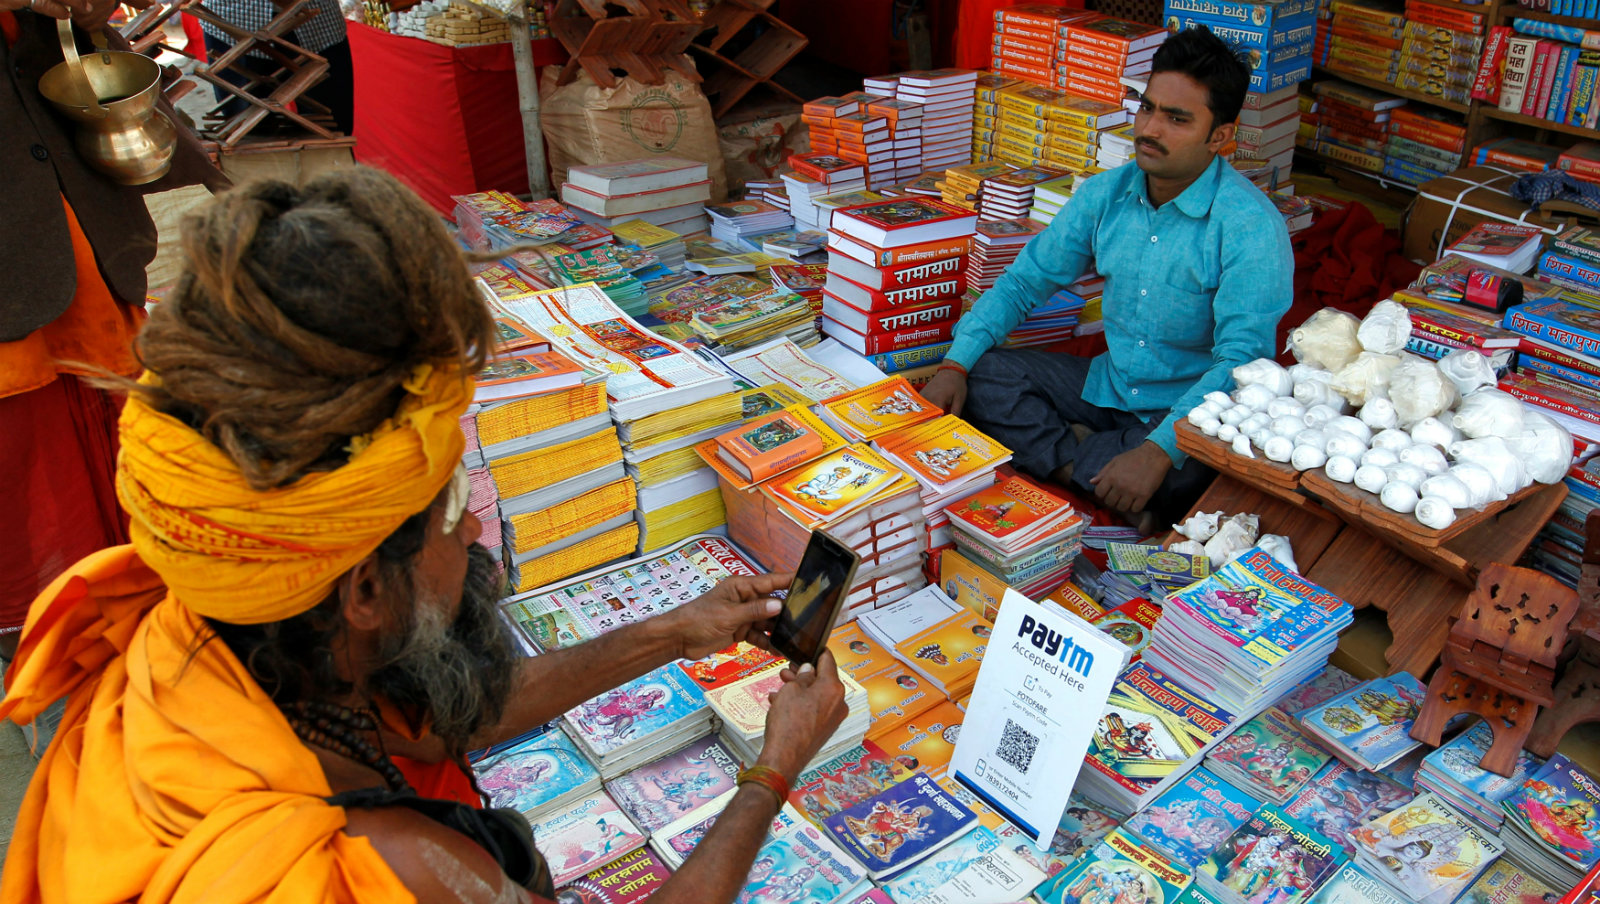 A Sadhu or a Hindu holy man pays the vendor through Paytm, a digital wallet company, after buying a book during the annual religious festival of Magh Mela in Allahabad, India, January 26, 2017. Picture taken January 26, 2017.